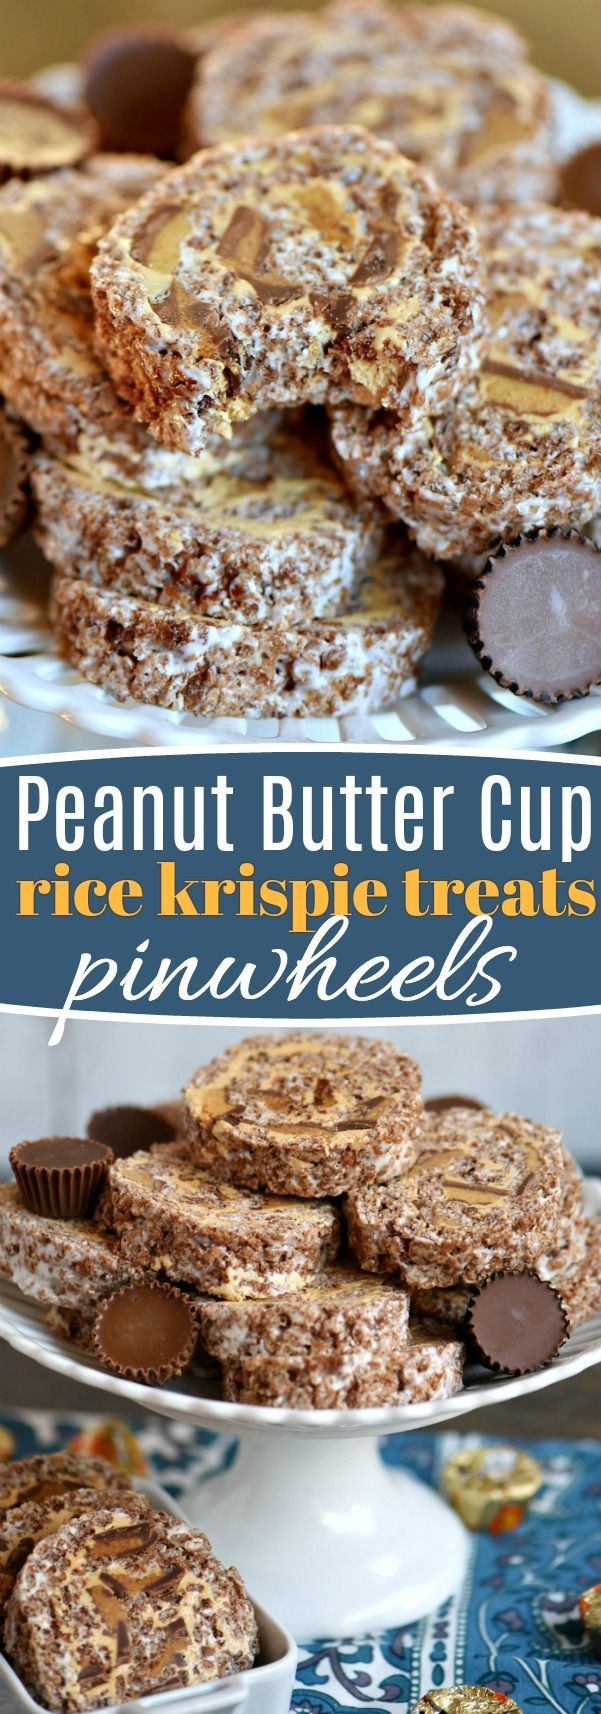 These Peanut Butter Cup Krispie Treats Pinwheels are my new favorite treat and sure to be a hit with the peanut butter lover in your life. Layers of chocolate, marshmallow, peanut butter and peanut butter cups are rolled up into an irresistible dessert! Great for parties! // Mom On Timeout